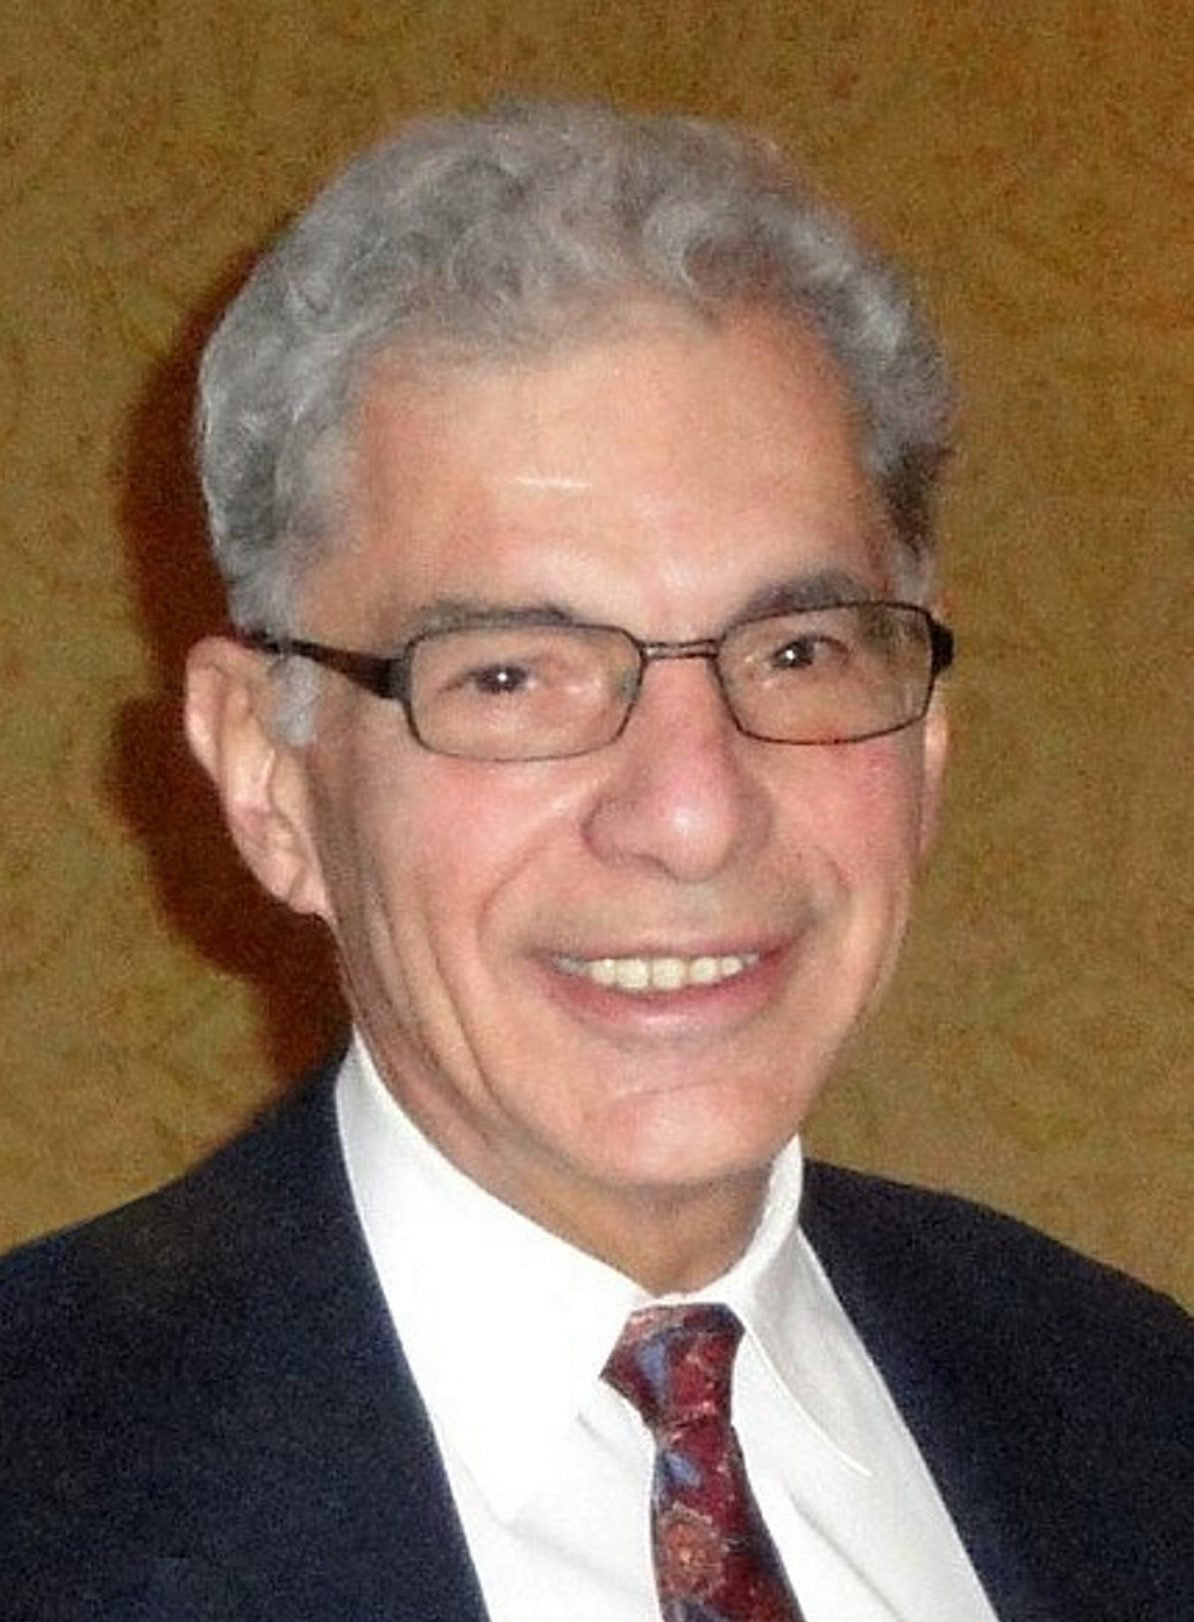 Dr. James P. Giambrone, president of Associated Physicians of WNY